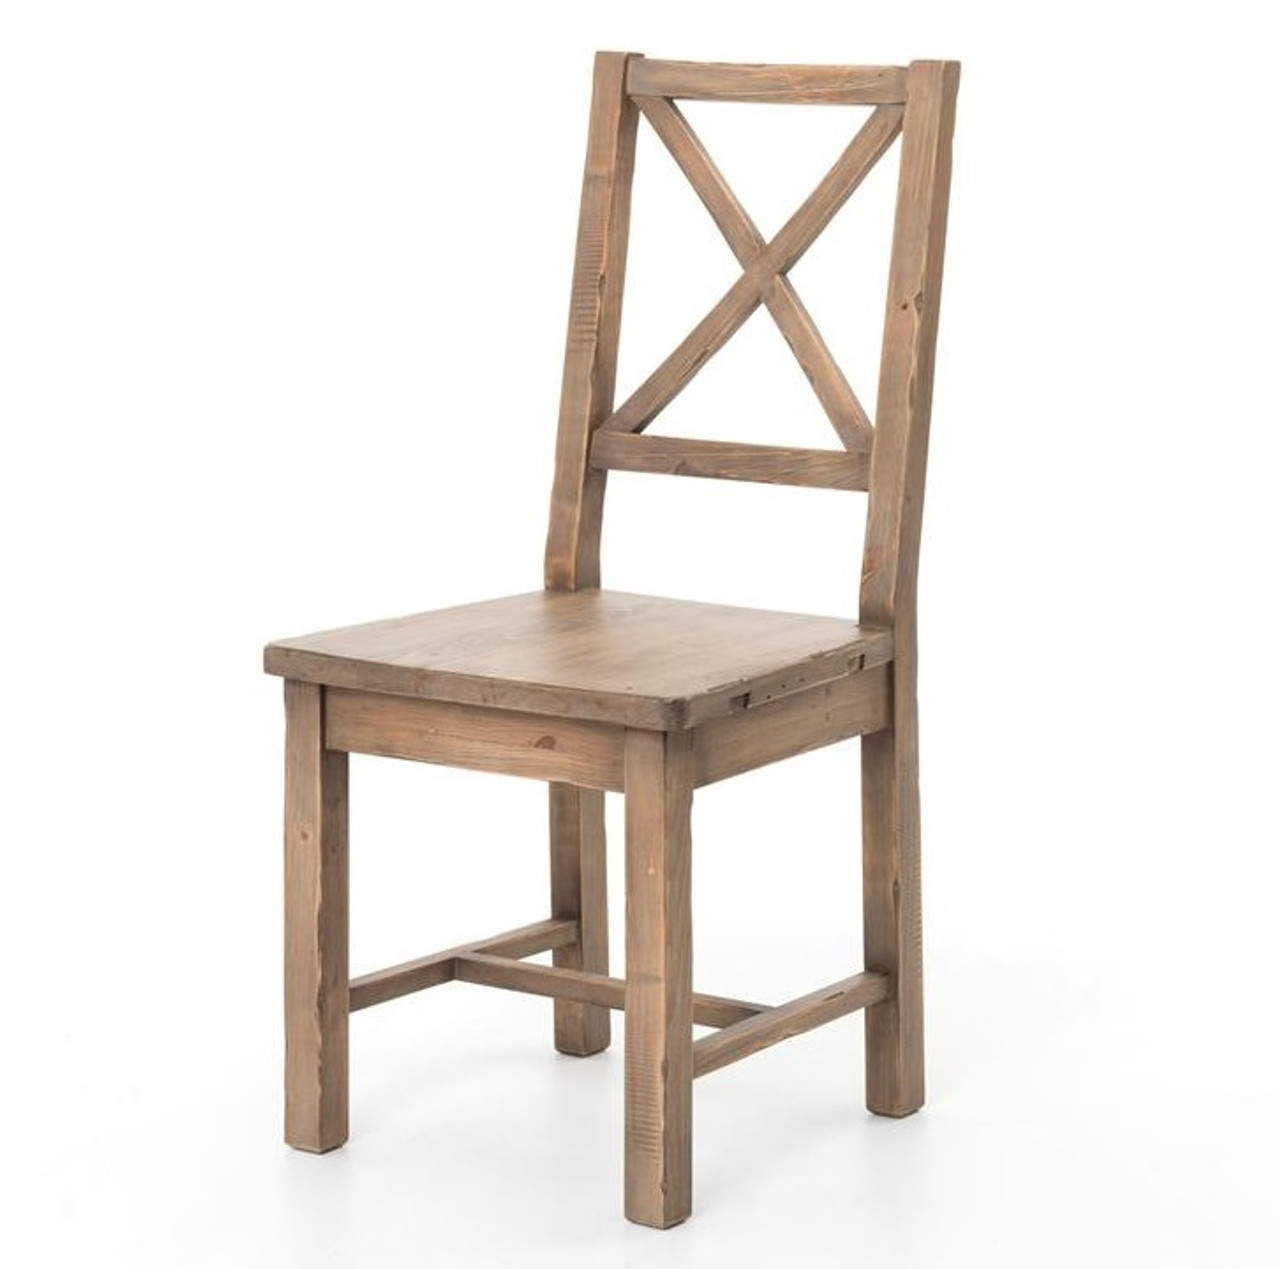 Rustic Dining Room Furniture: Coastal Rustic Solid Wood Dining Room Chair